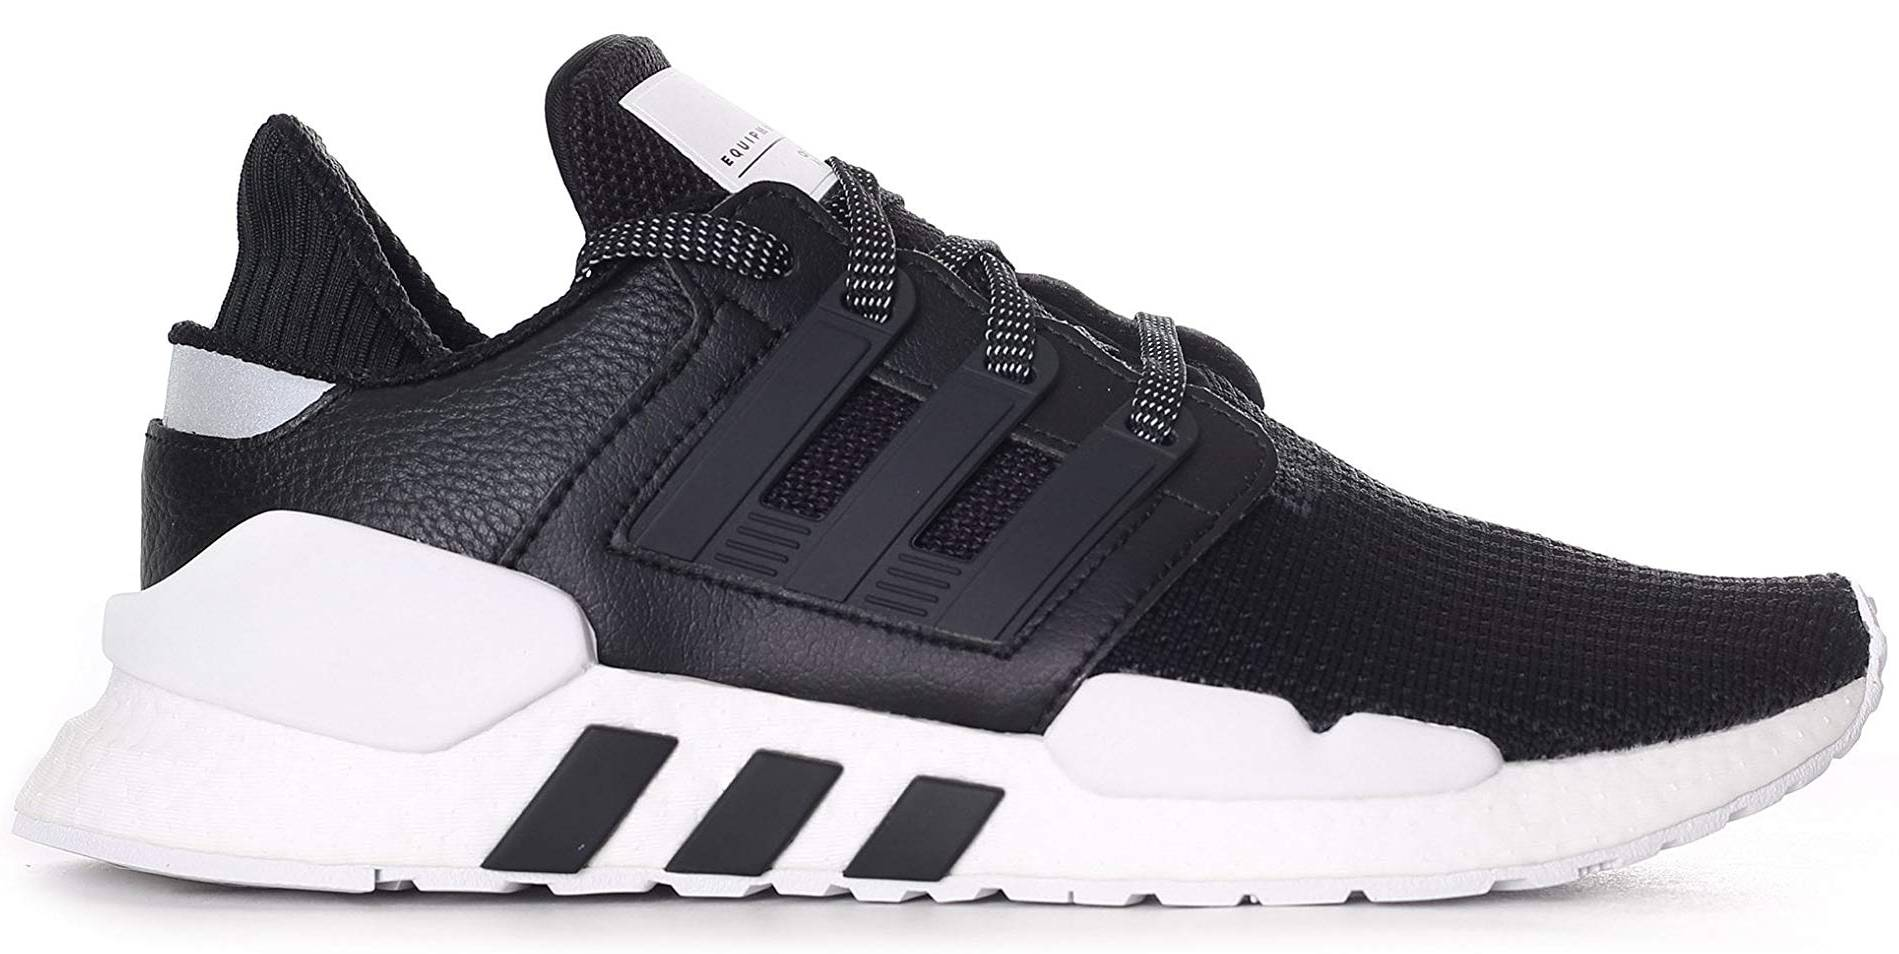 móvil dictador persecucion  Adidas EQT Support 91/18 sneakers in 7 colors (only $60) | RunRepeat